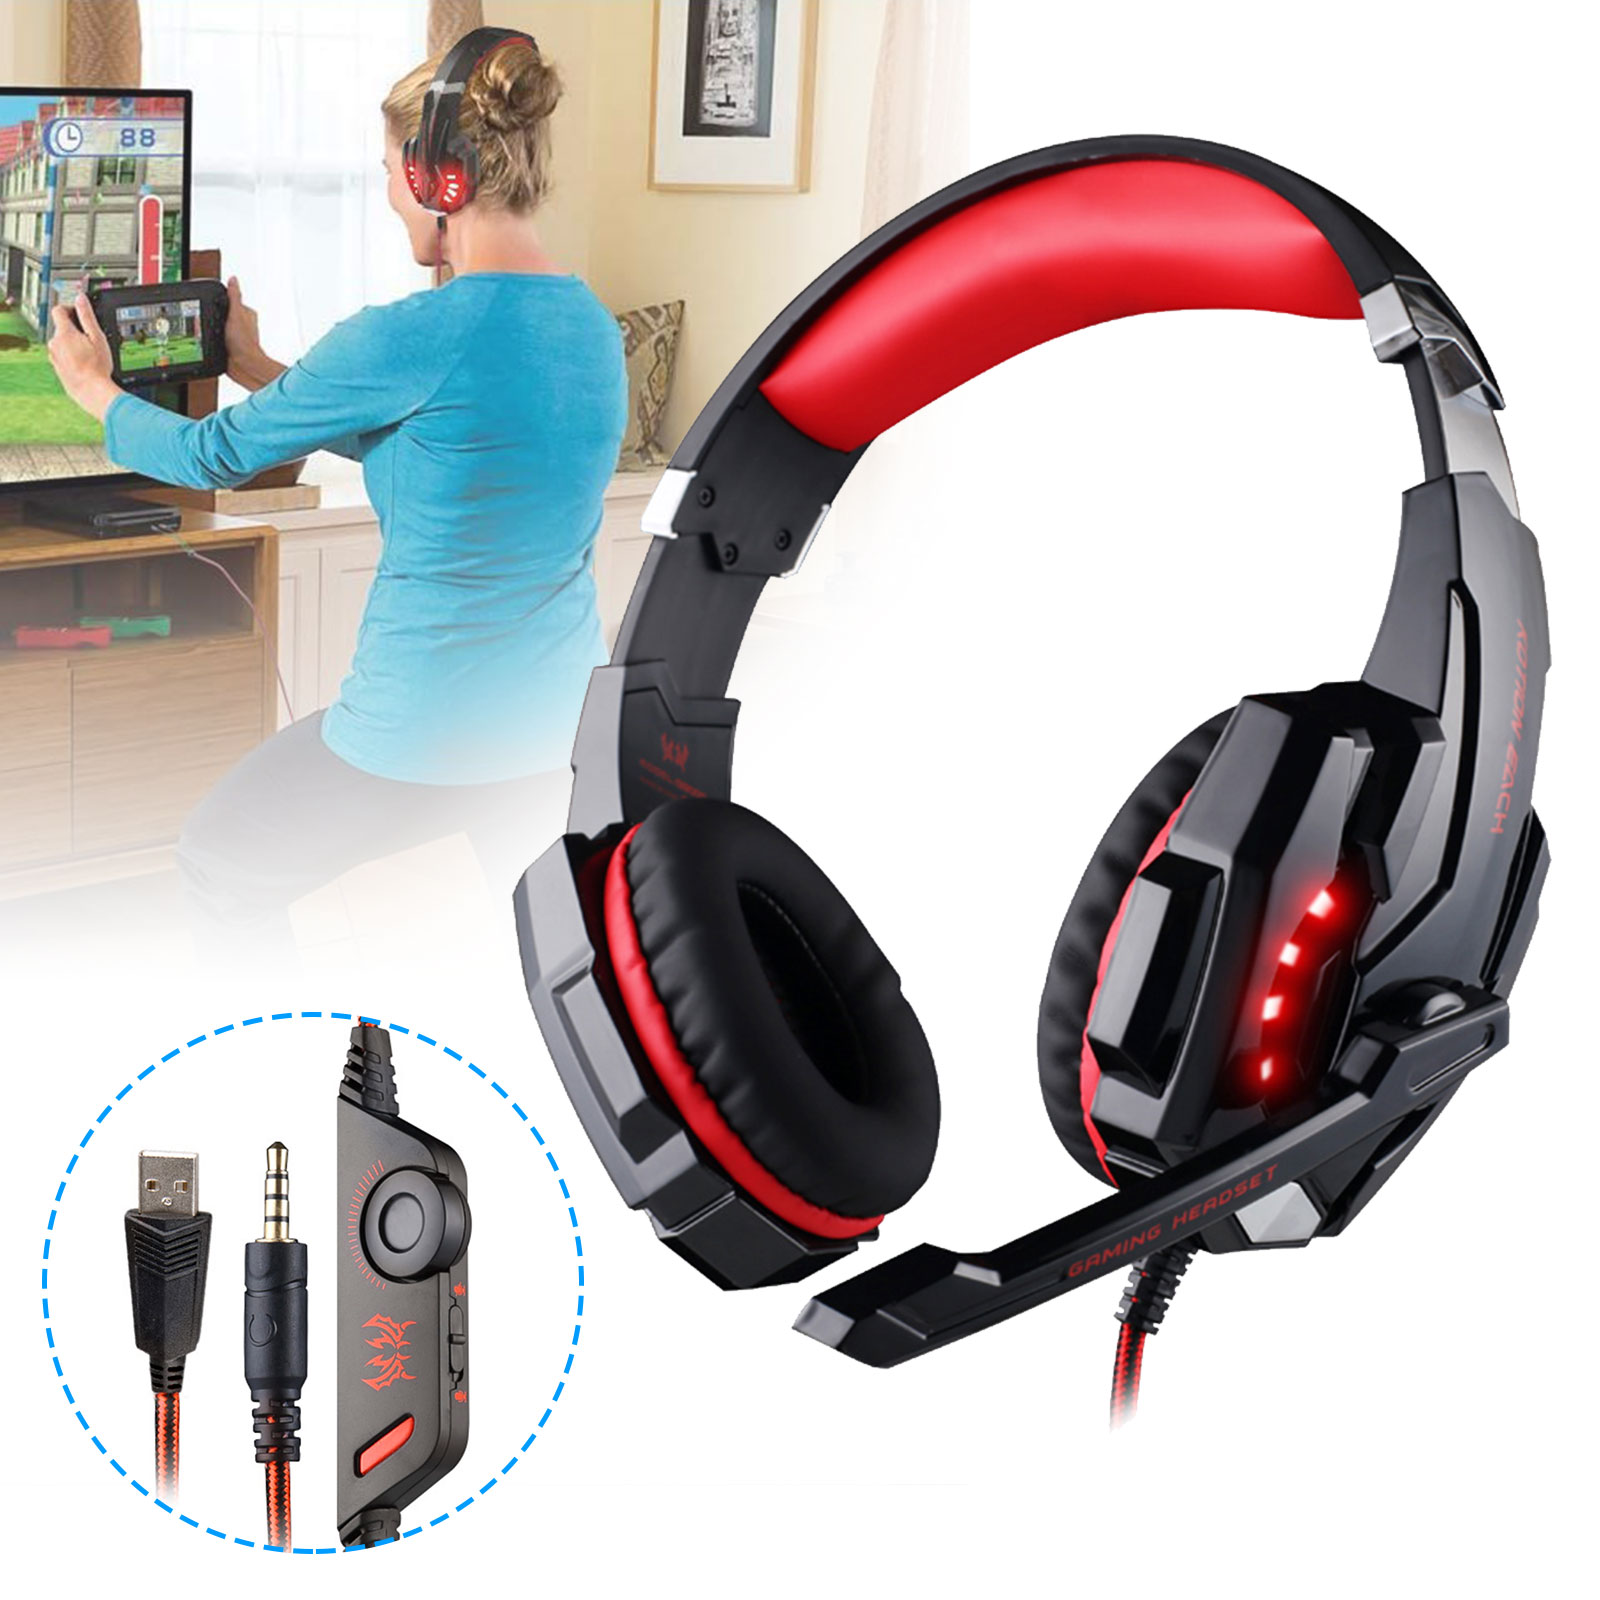 Details about For PS4 Xbox One PC Mac 3 5mm Wired Gaming Headset Mic Stereo  Surround Headphone